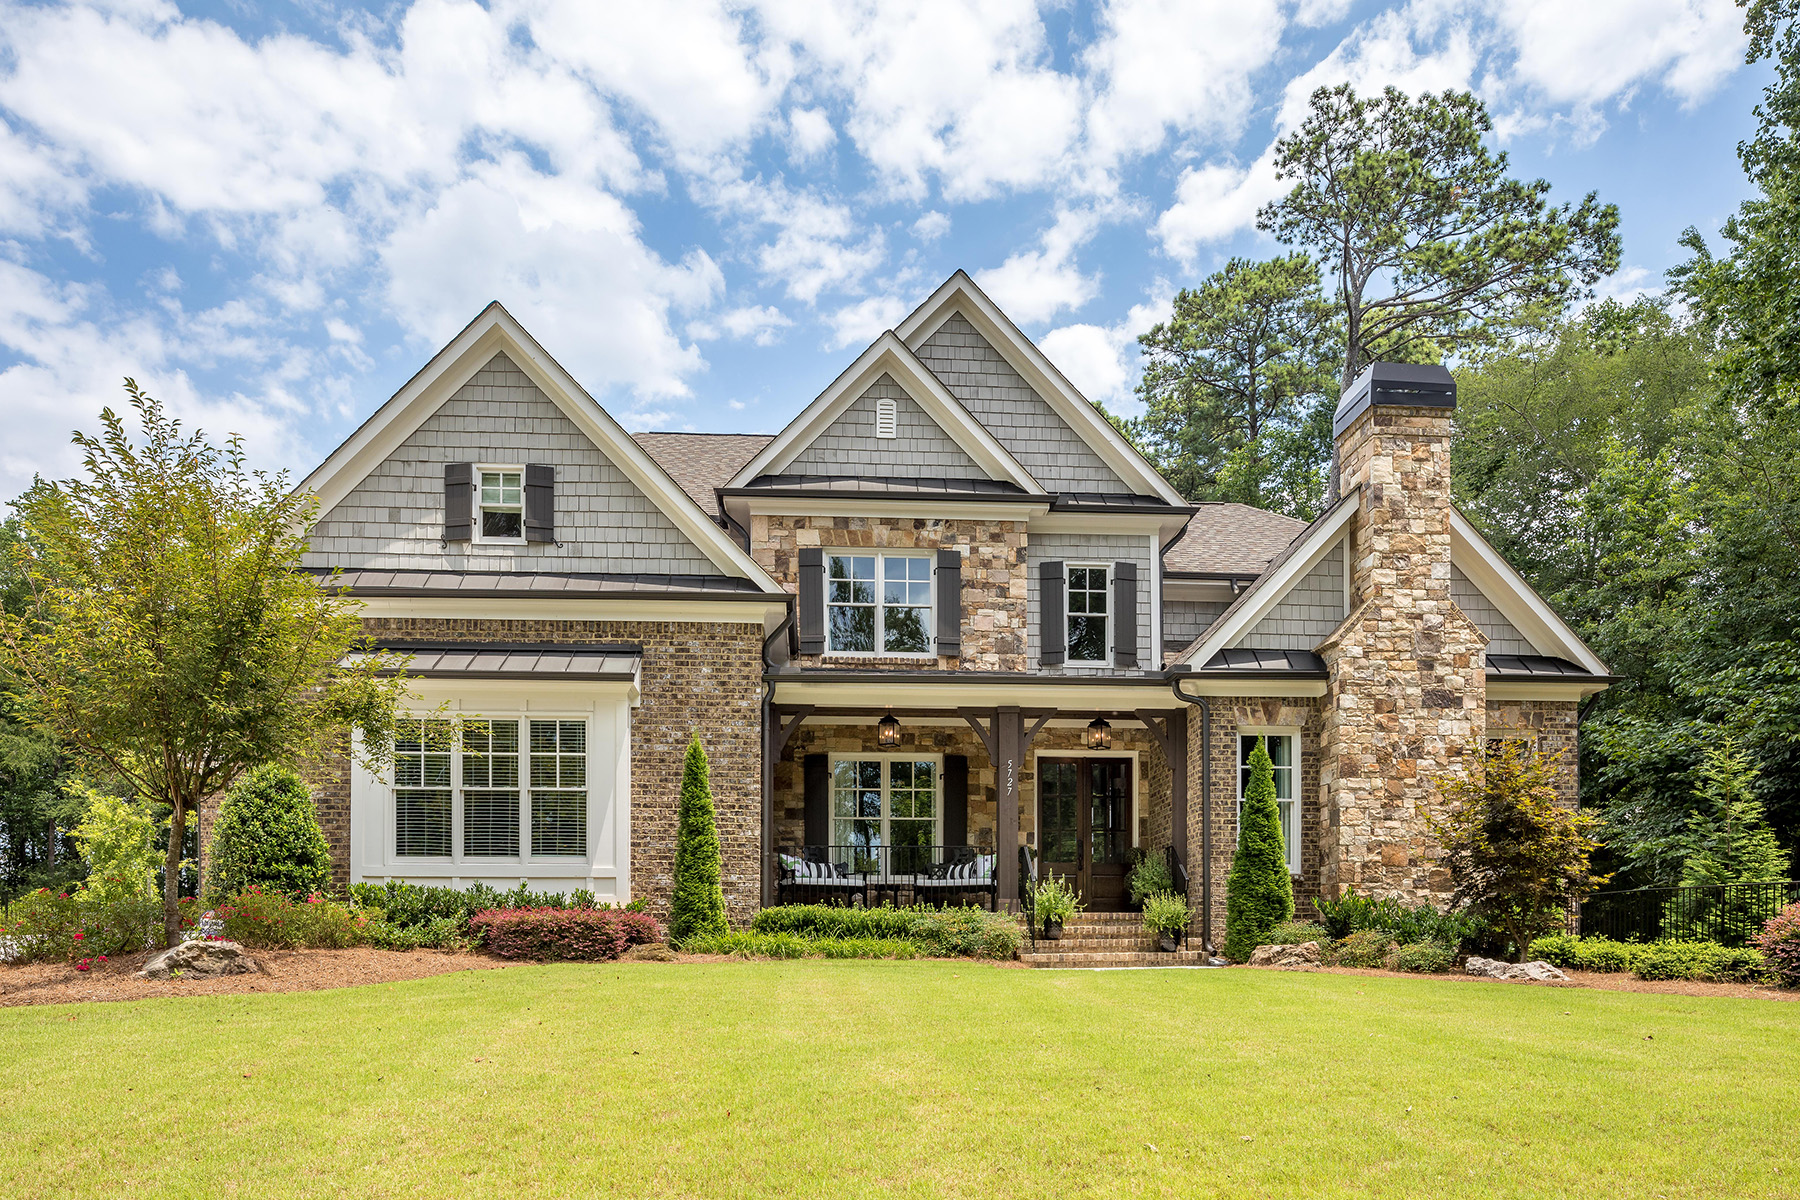 Single Family Homes for Active at Recently Built Home on Private 1.5+/- Acre Lot Inside the Perimeter 5727 Long Island Drive Sandy Springs, Georgia 30327 United States